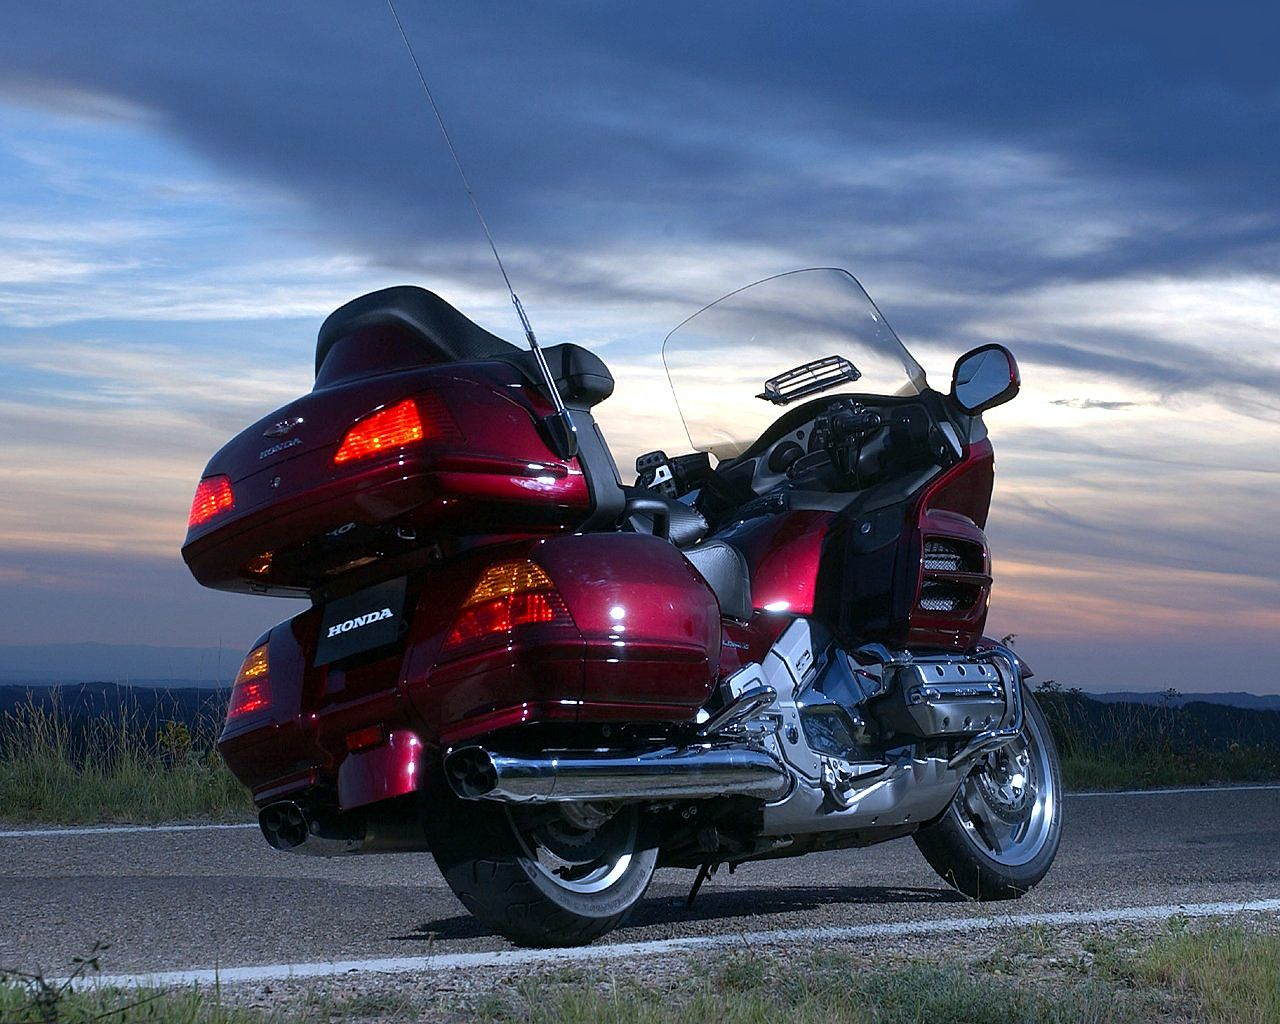 Goldwing Motorcycle Wallpapers   Top Goldwing Motorcycle 1280x1024